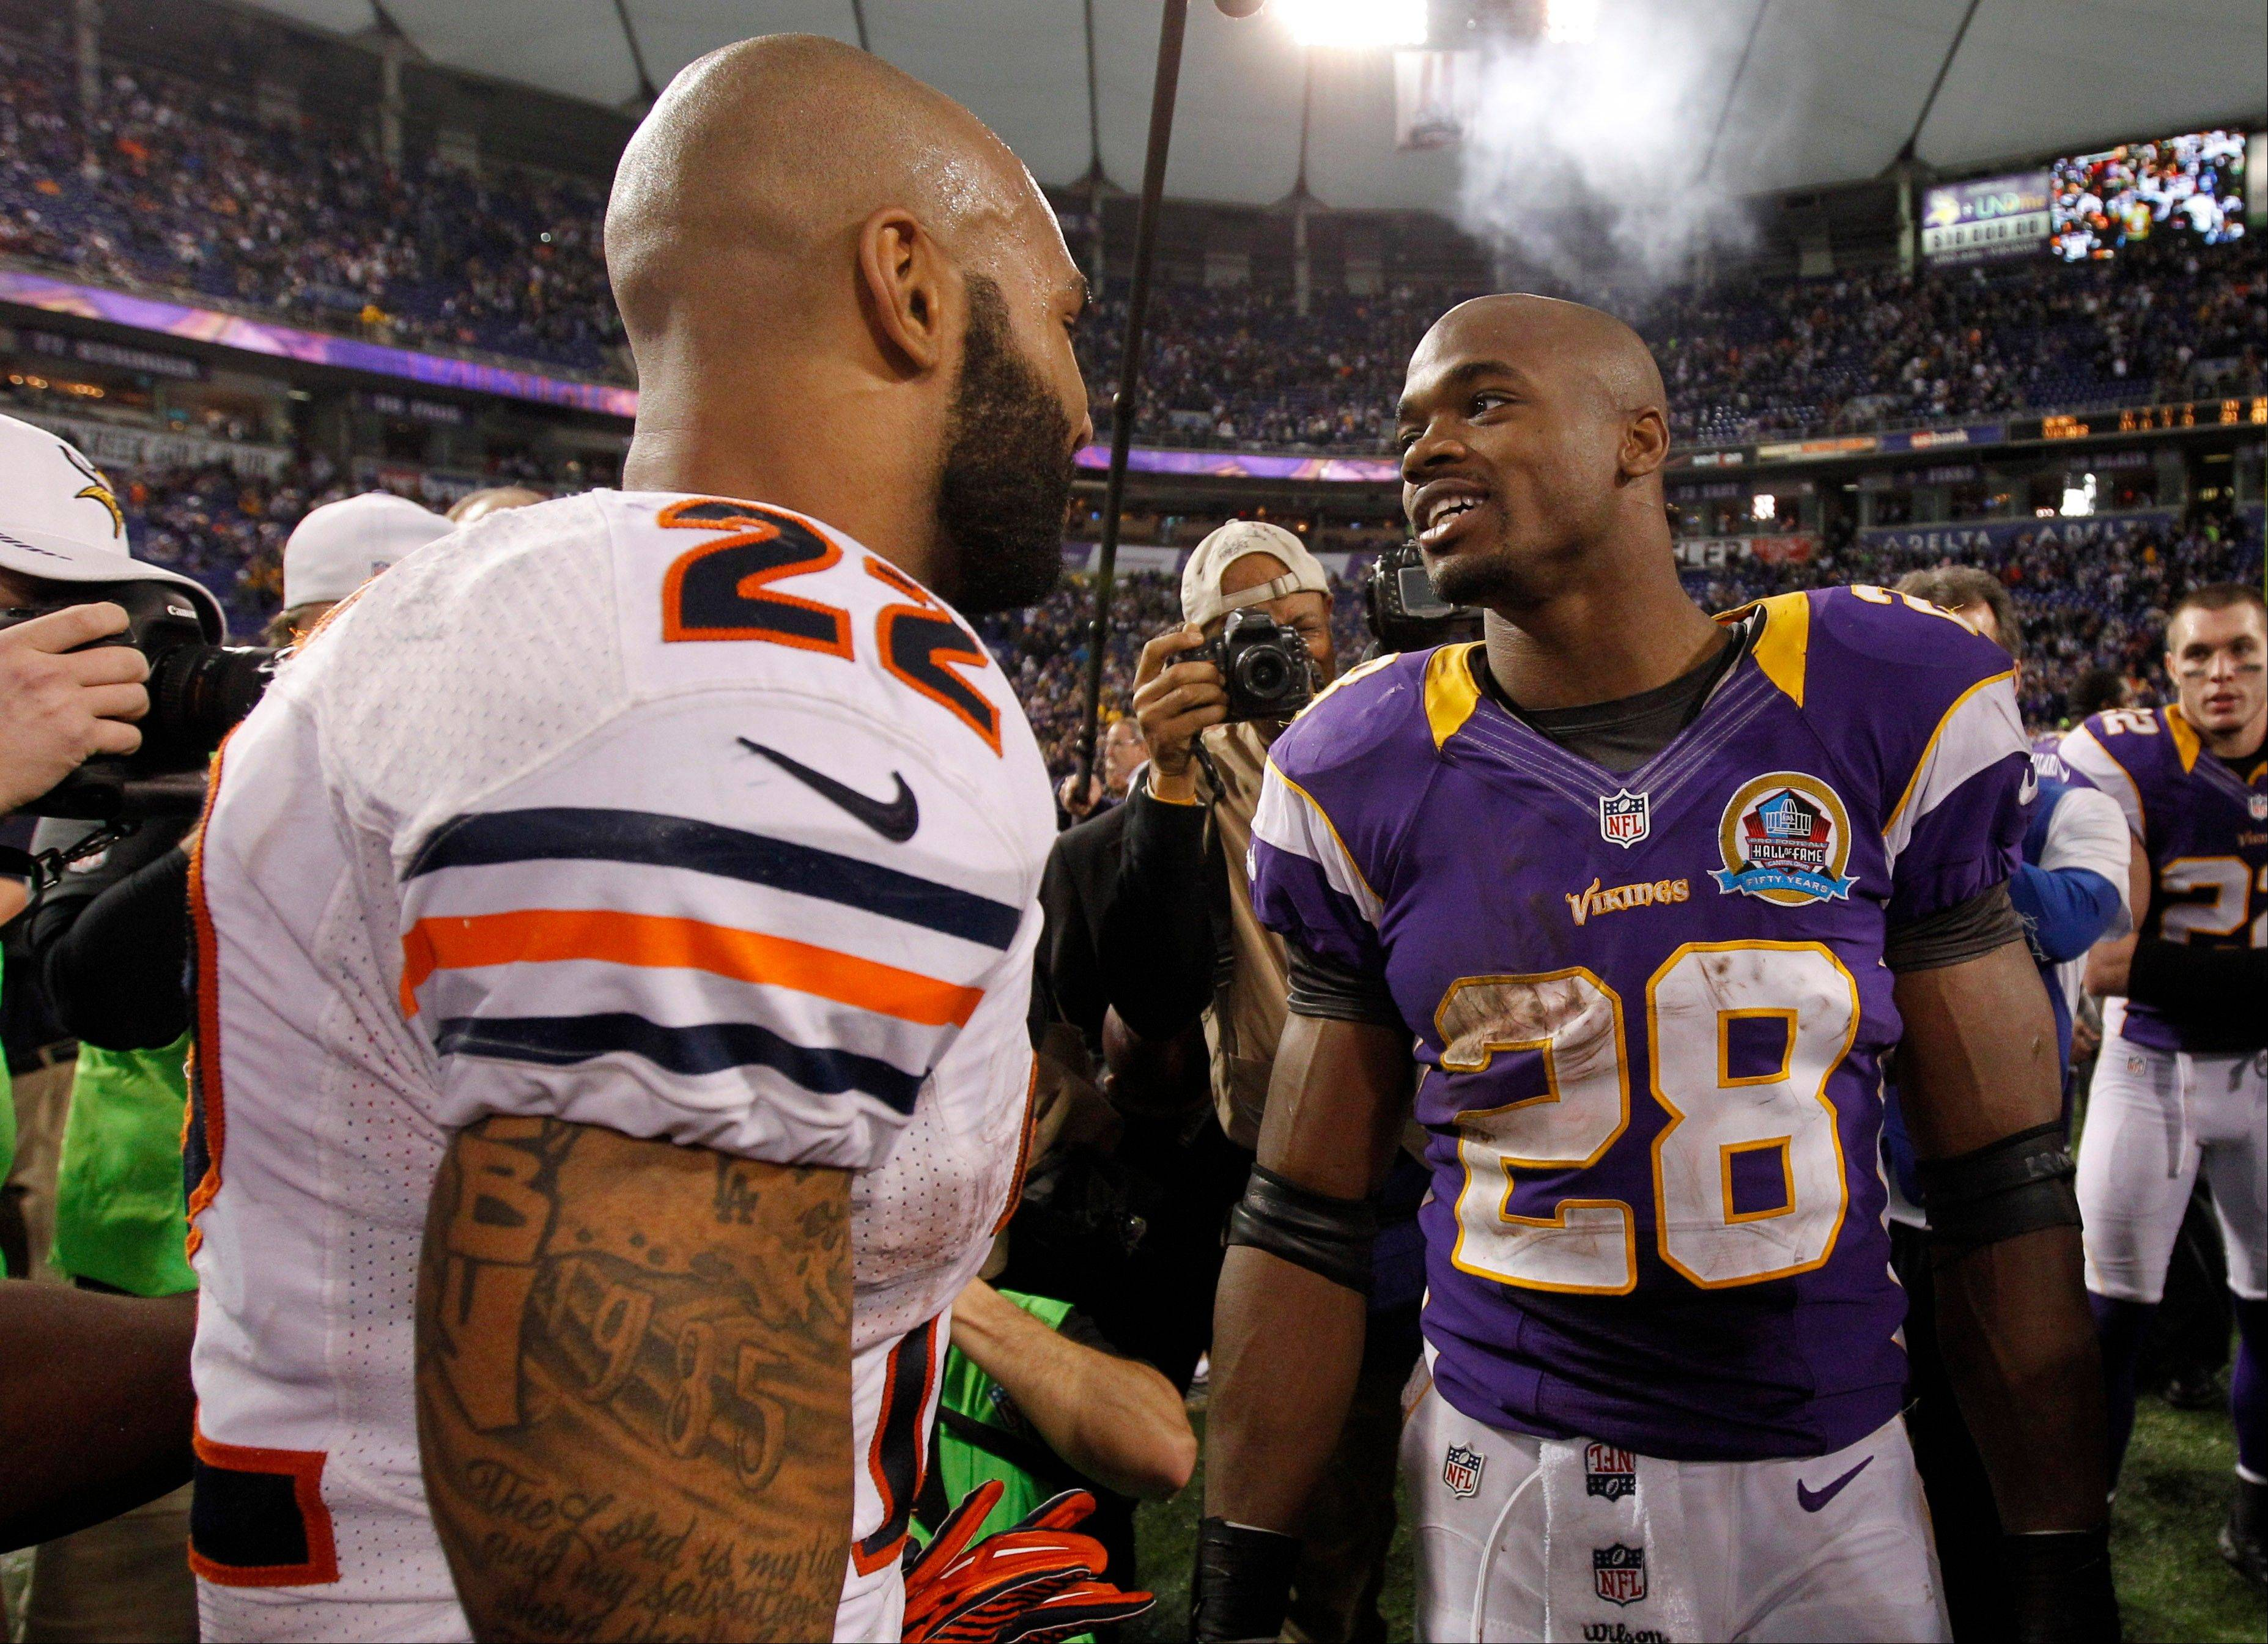 Vikings running back Adrian Peterson, right, is ranked No. 1 among running backs according to Daily Herald fantasy football analyst John Dietz.